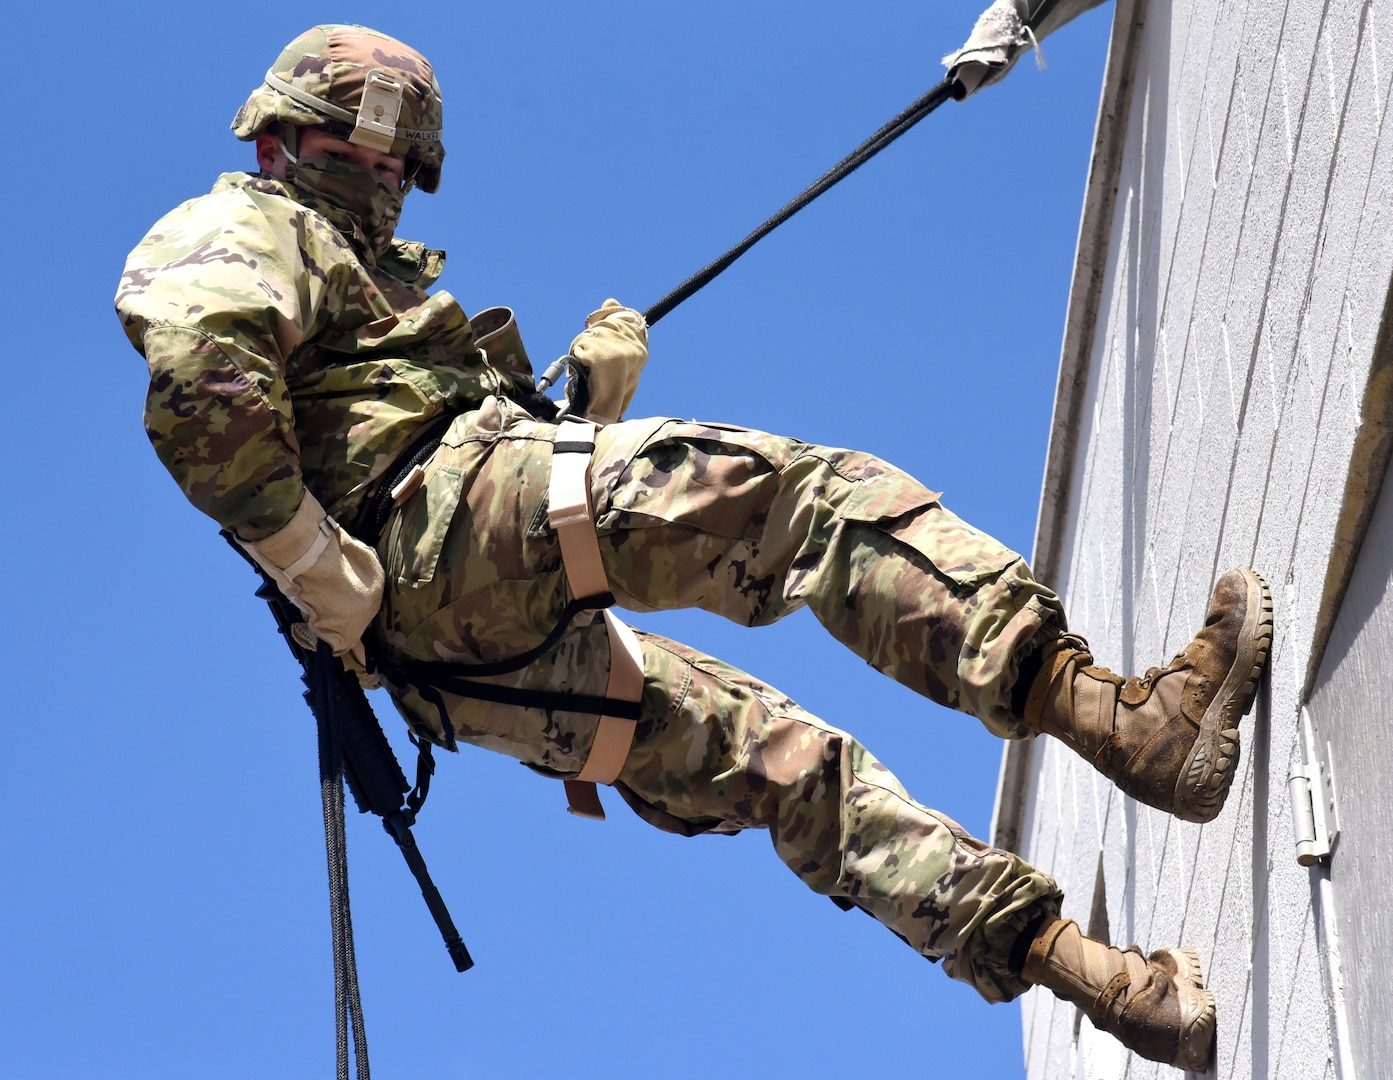 Virginia National Guard Soldiers representing the 116th Infantry Brigade Combat Team and Maneuver Training Center Fort Pickett claim top honors at the 2021 VNG Best Warrior Competition, held March 18-21, 2021, at Fort Pickett, Virginia.